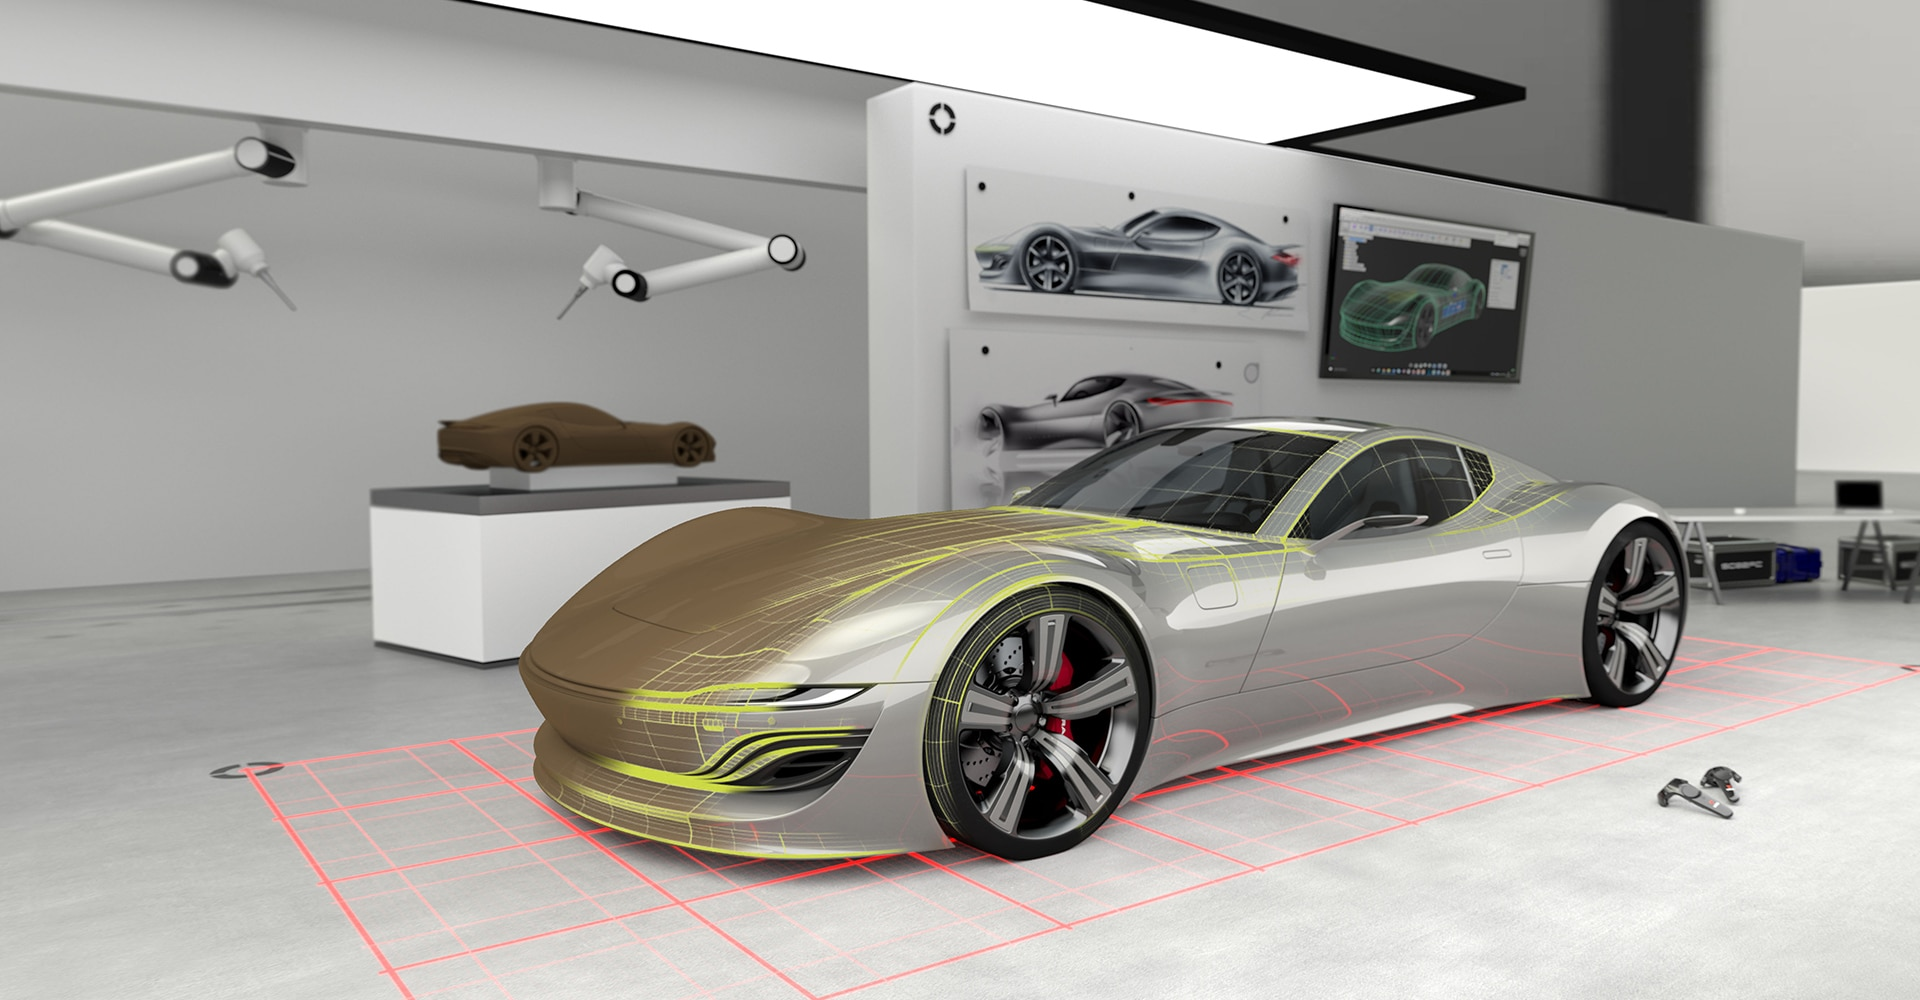 Automotive and car design software manufacturing autodesk a glimpse into the car design studio of the future malvernweather Images